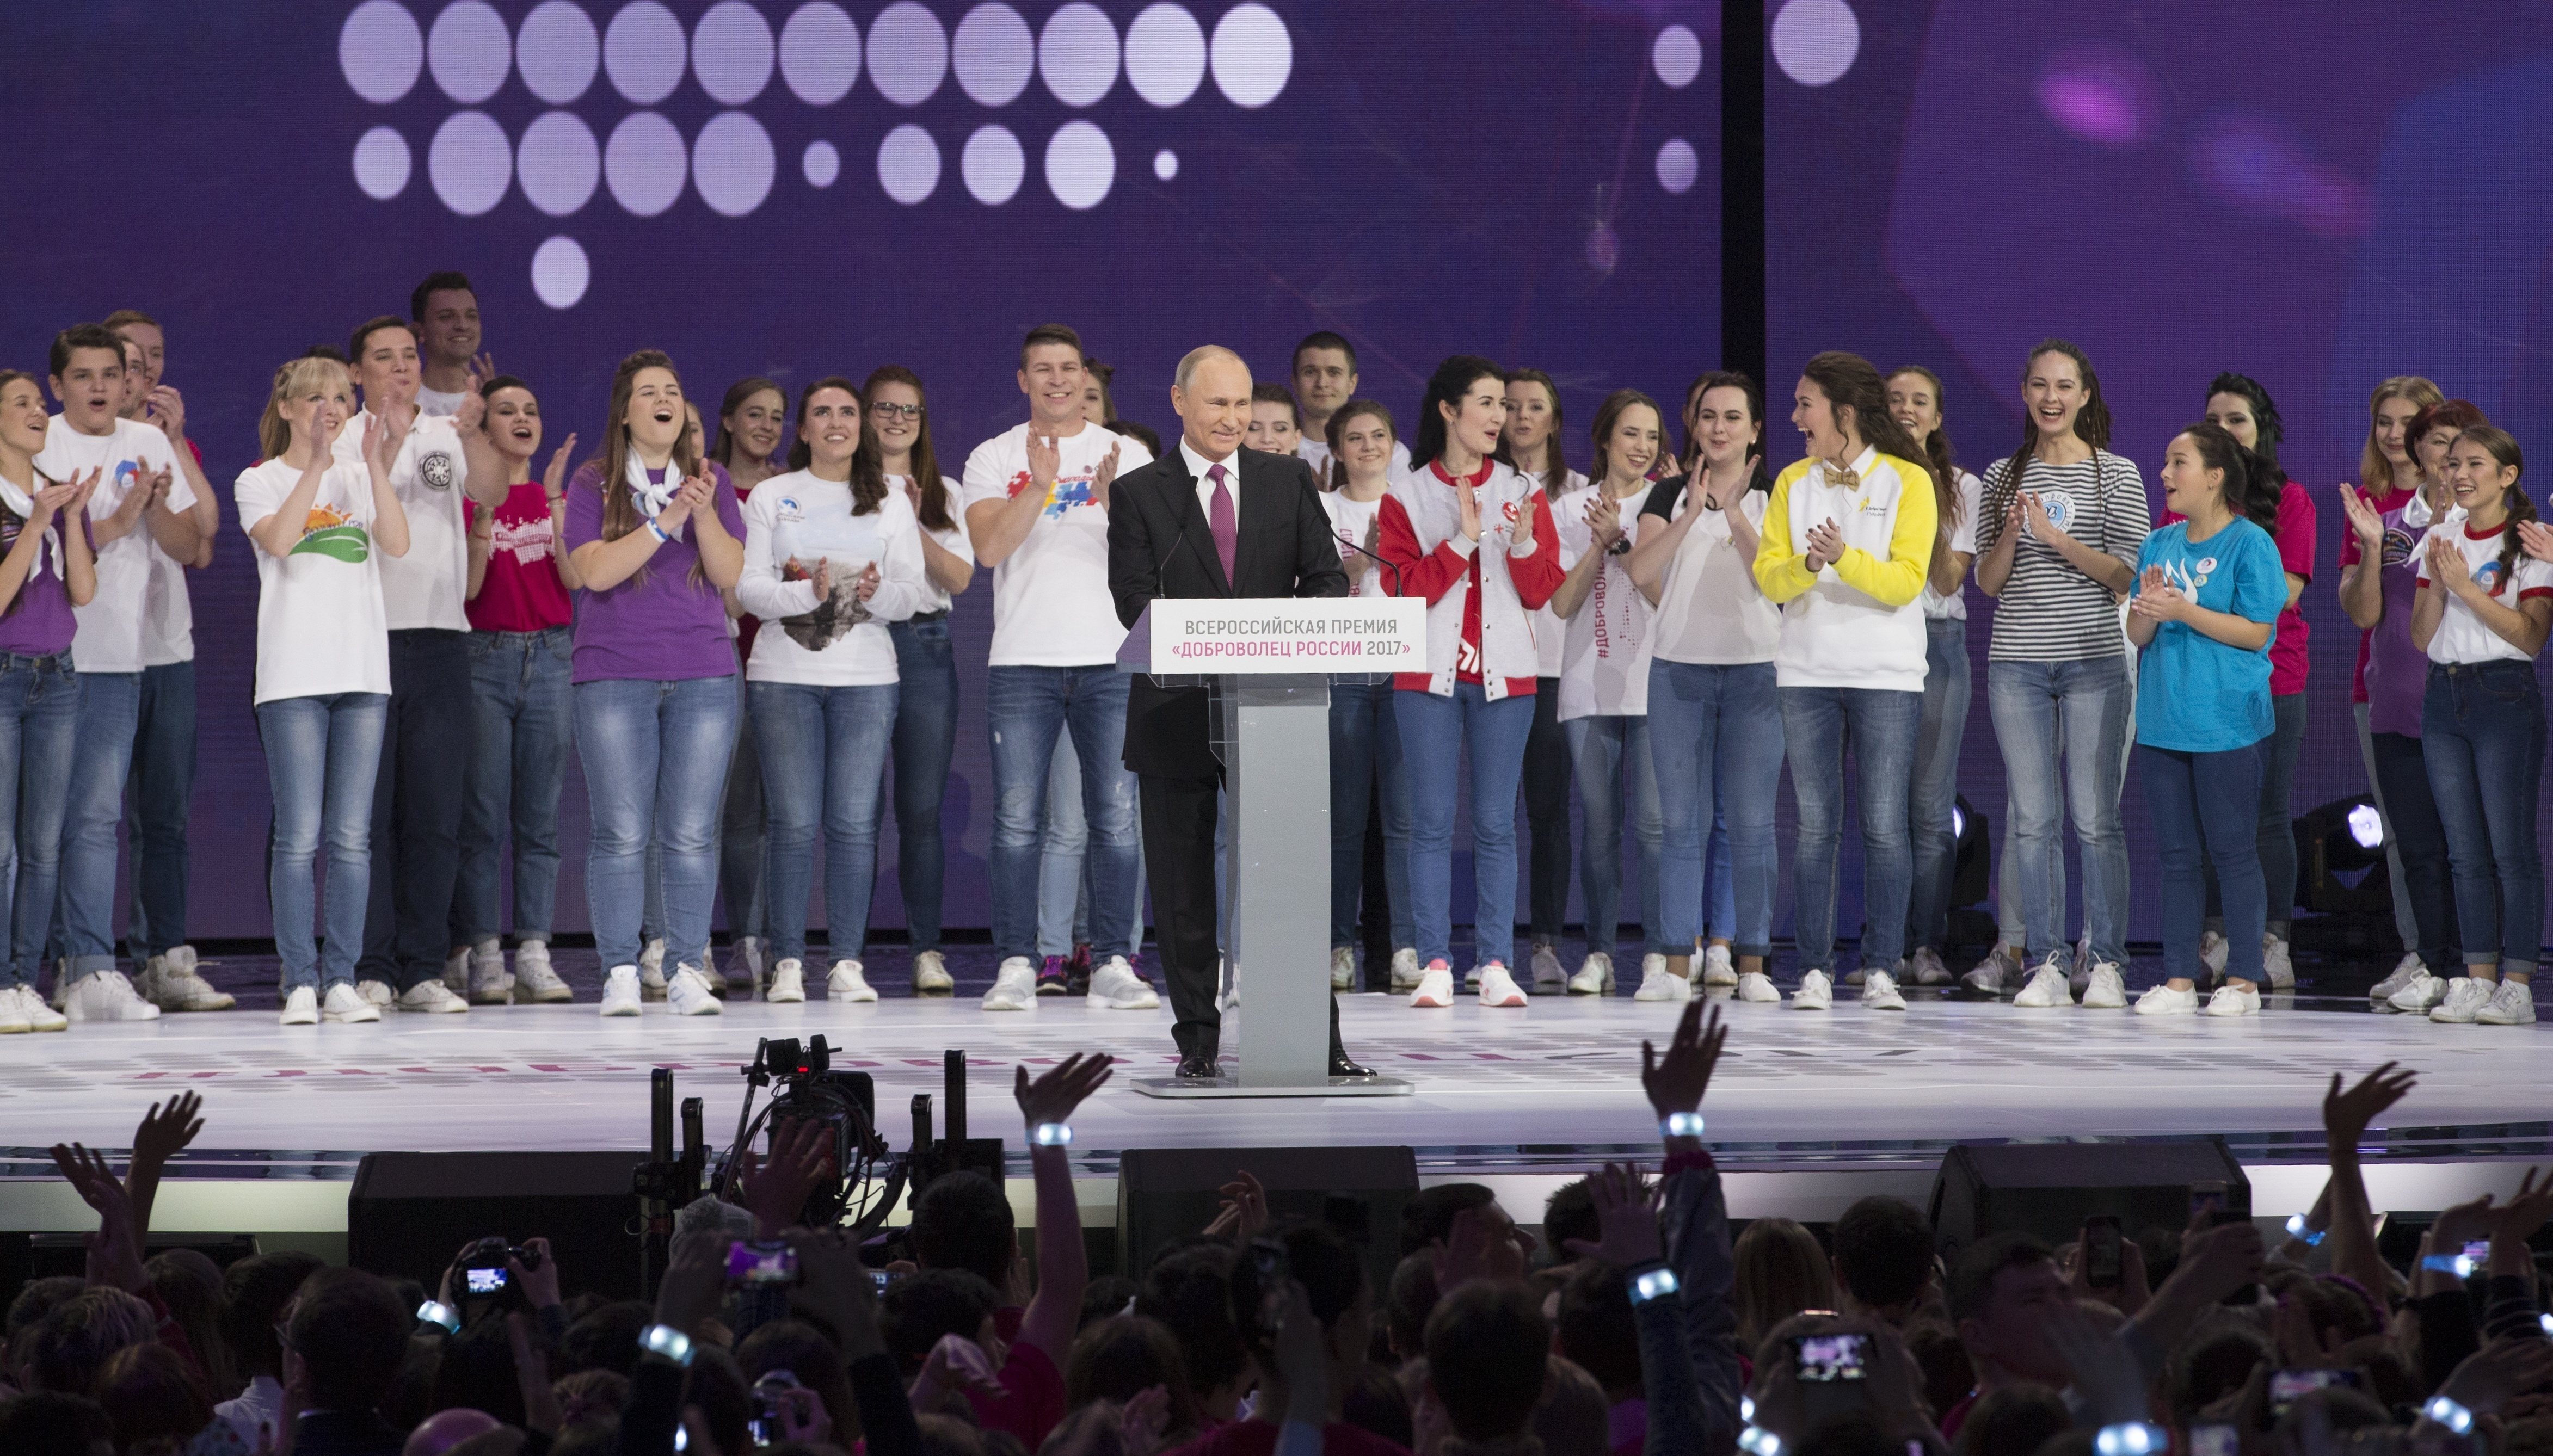 Russian President Vladimir Putin, center, arrives to attend at the annual Volunteer of Russia 2017 award ceremony at the Megasport Sport Palace in Moscow, Russia, Wednesday, Dec. 6, 2017. Putin has moved an inch closer to announcing his intention to seek re-election in the next March's vote, saying he would weigh the move based on public support. (AP Photo/Ivan Sekretarev)